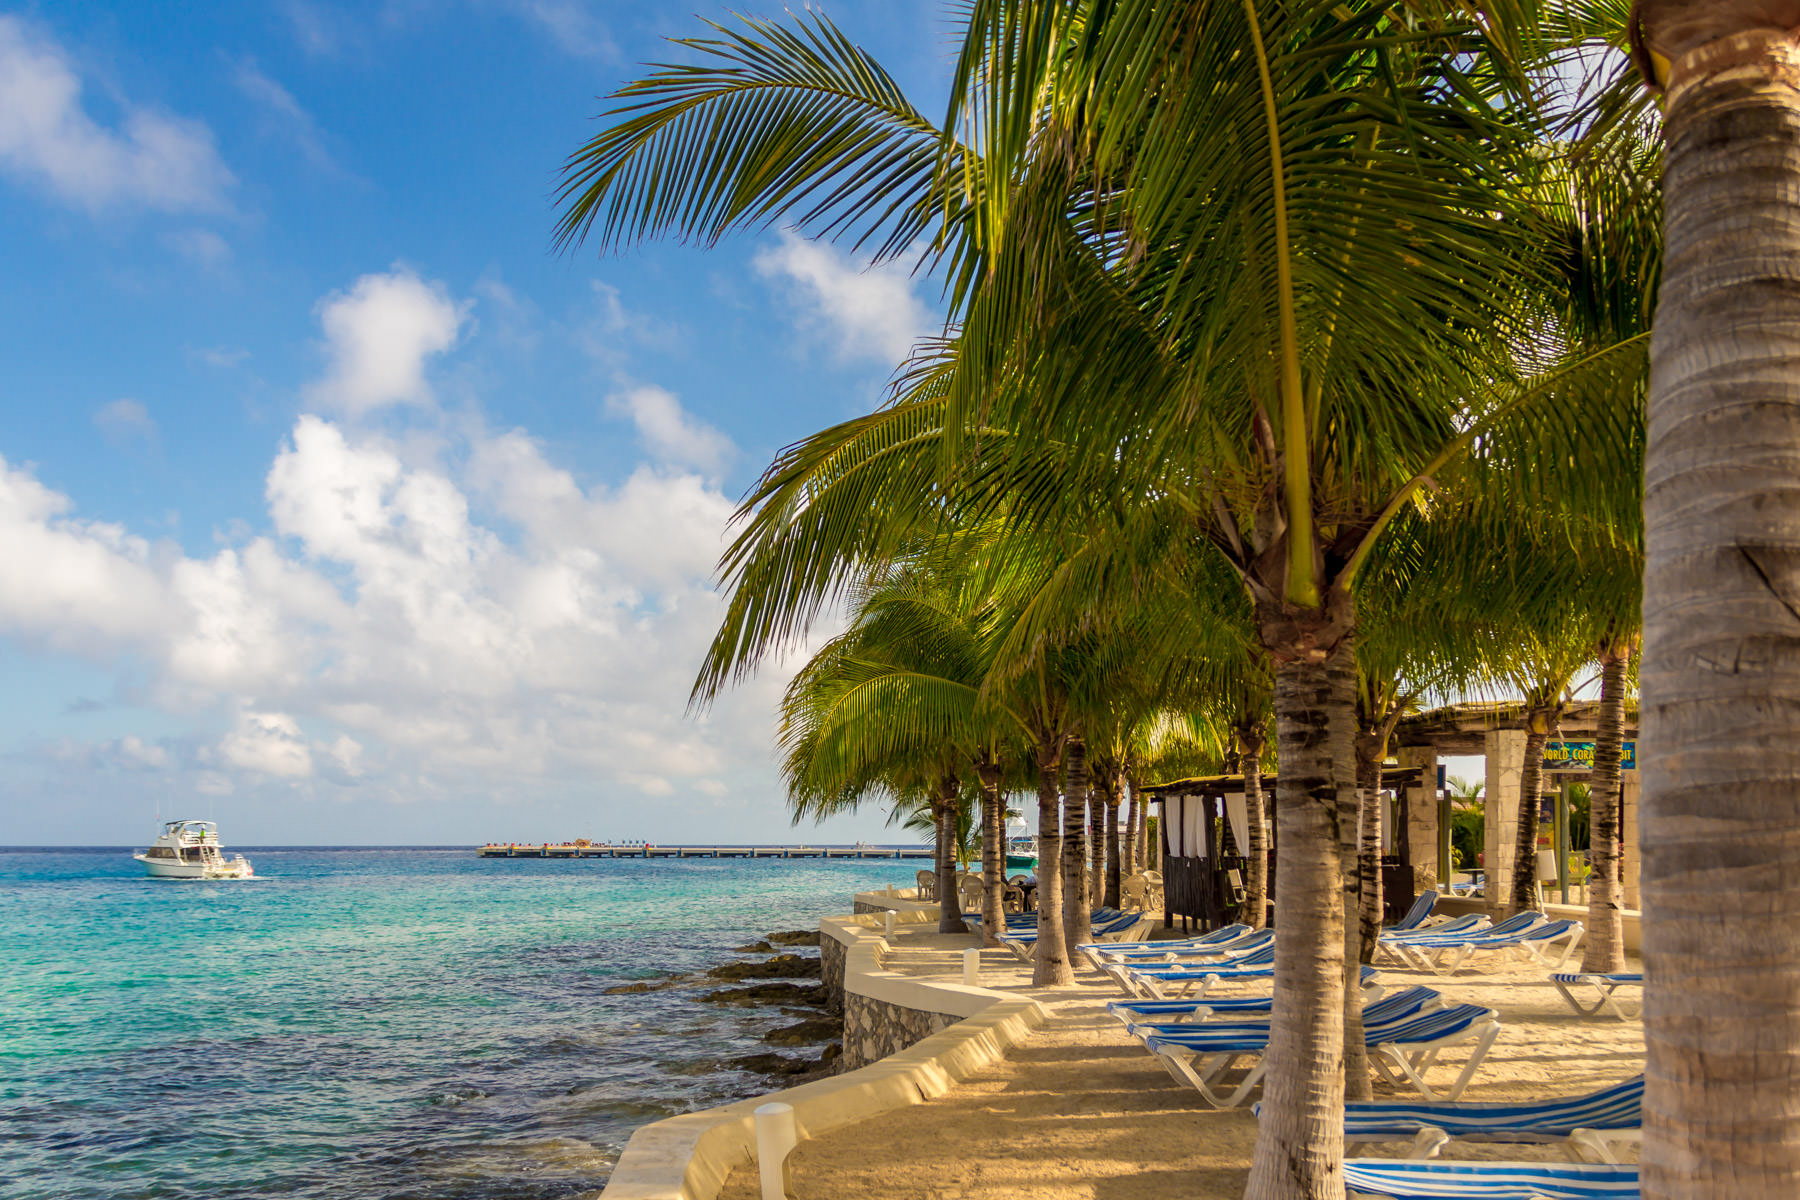 Palm trees in Cozumel, Mexico.